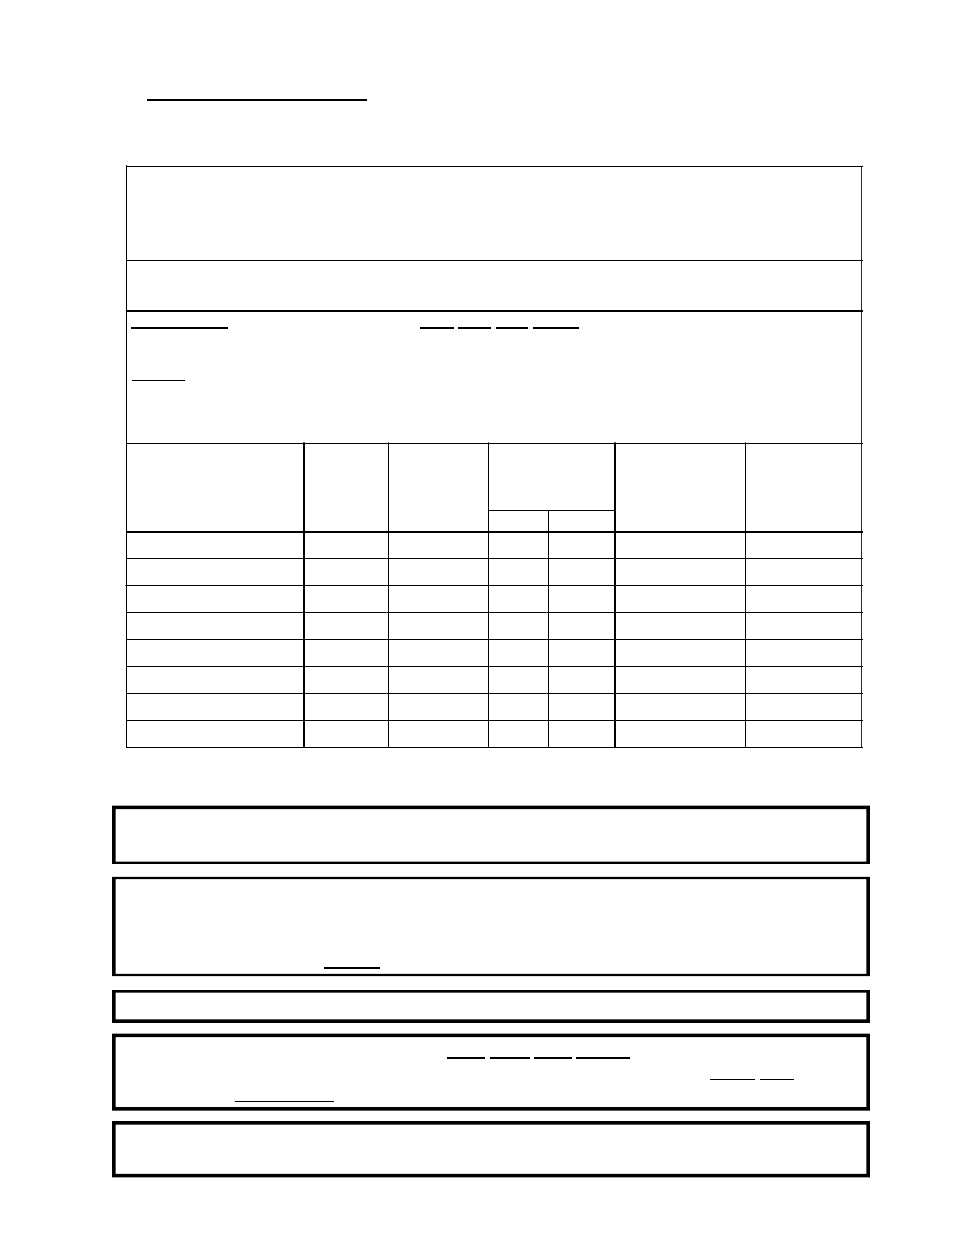 medium resolution of mlg 55 gas mls 55 steam american dryer corp gas electric steam ml 55hs user manual page 23 56